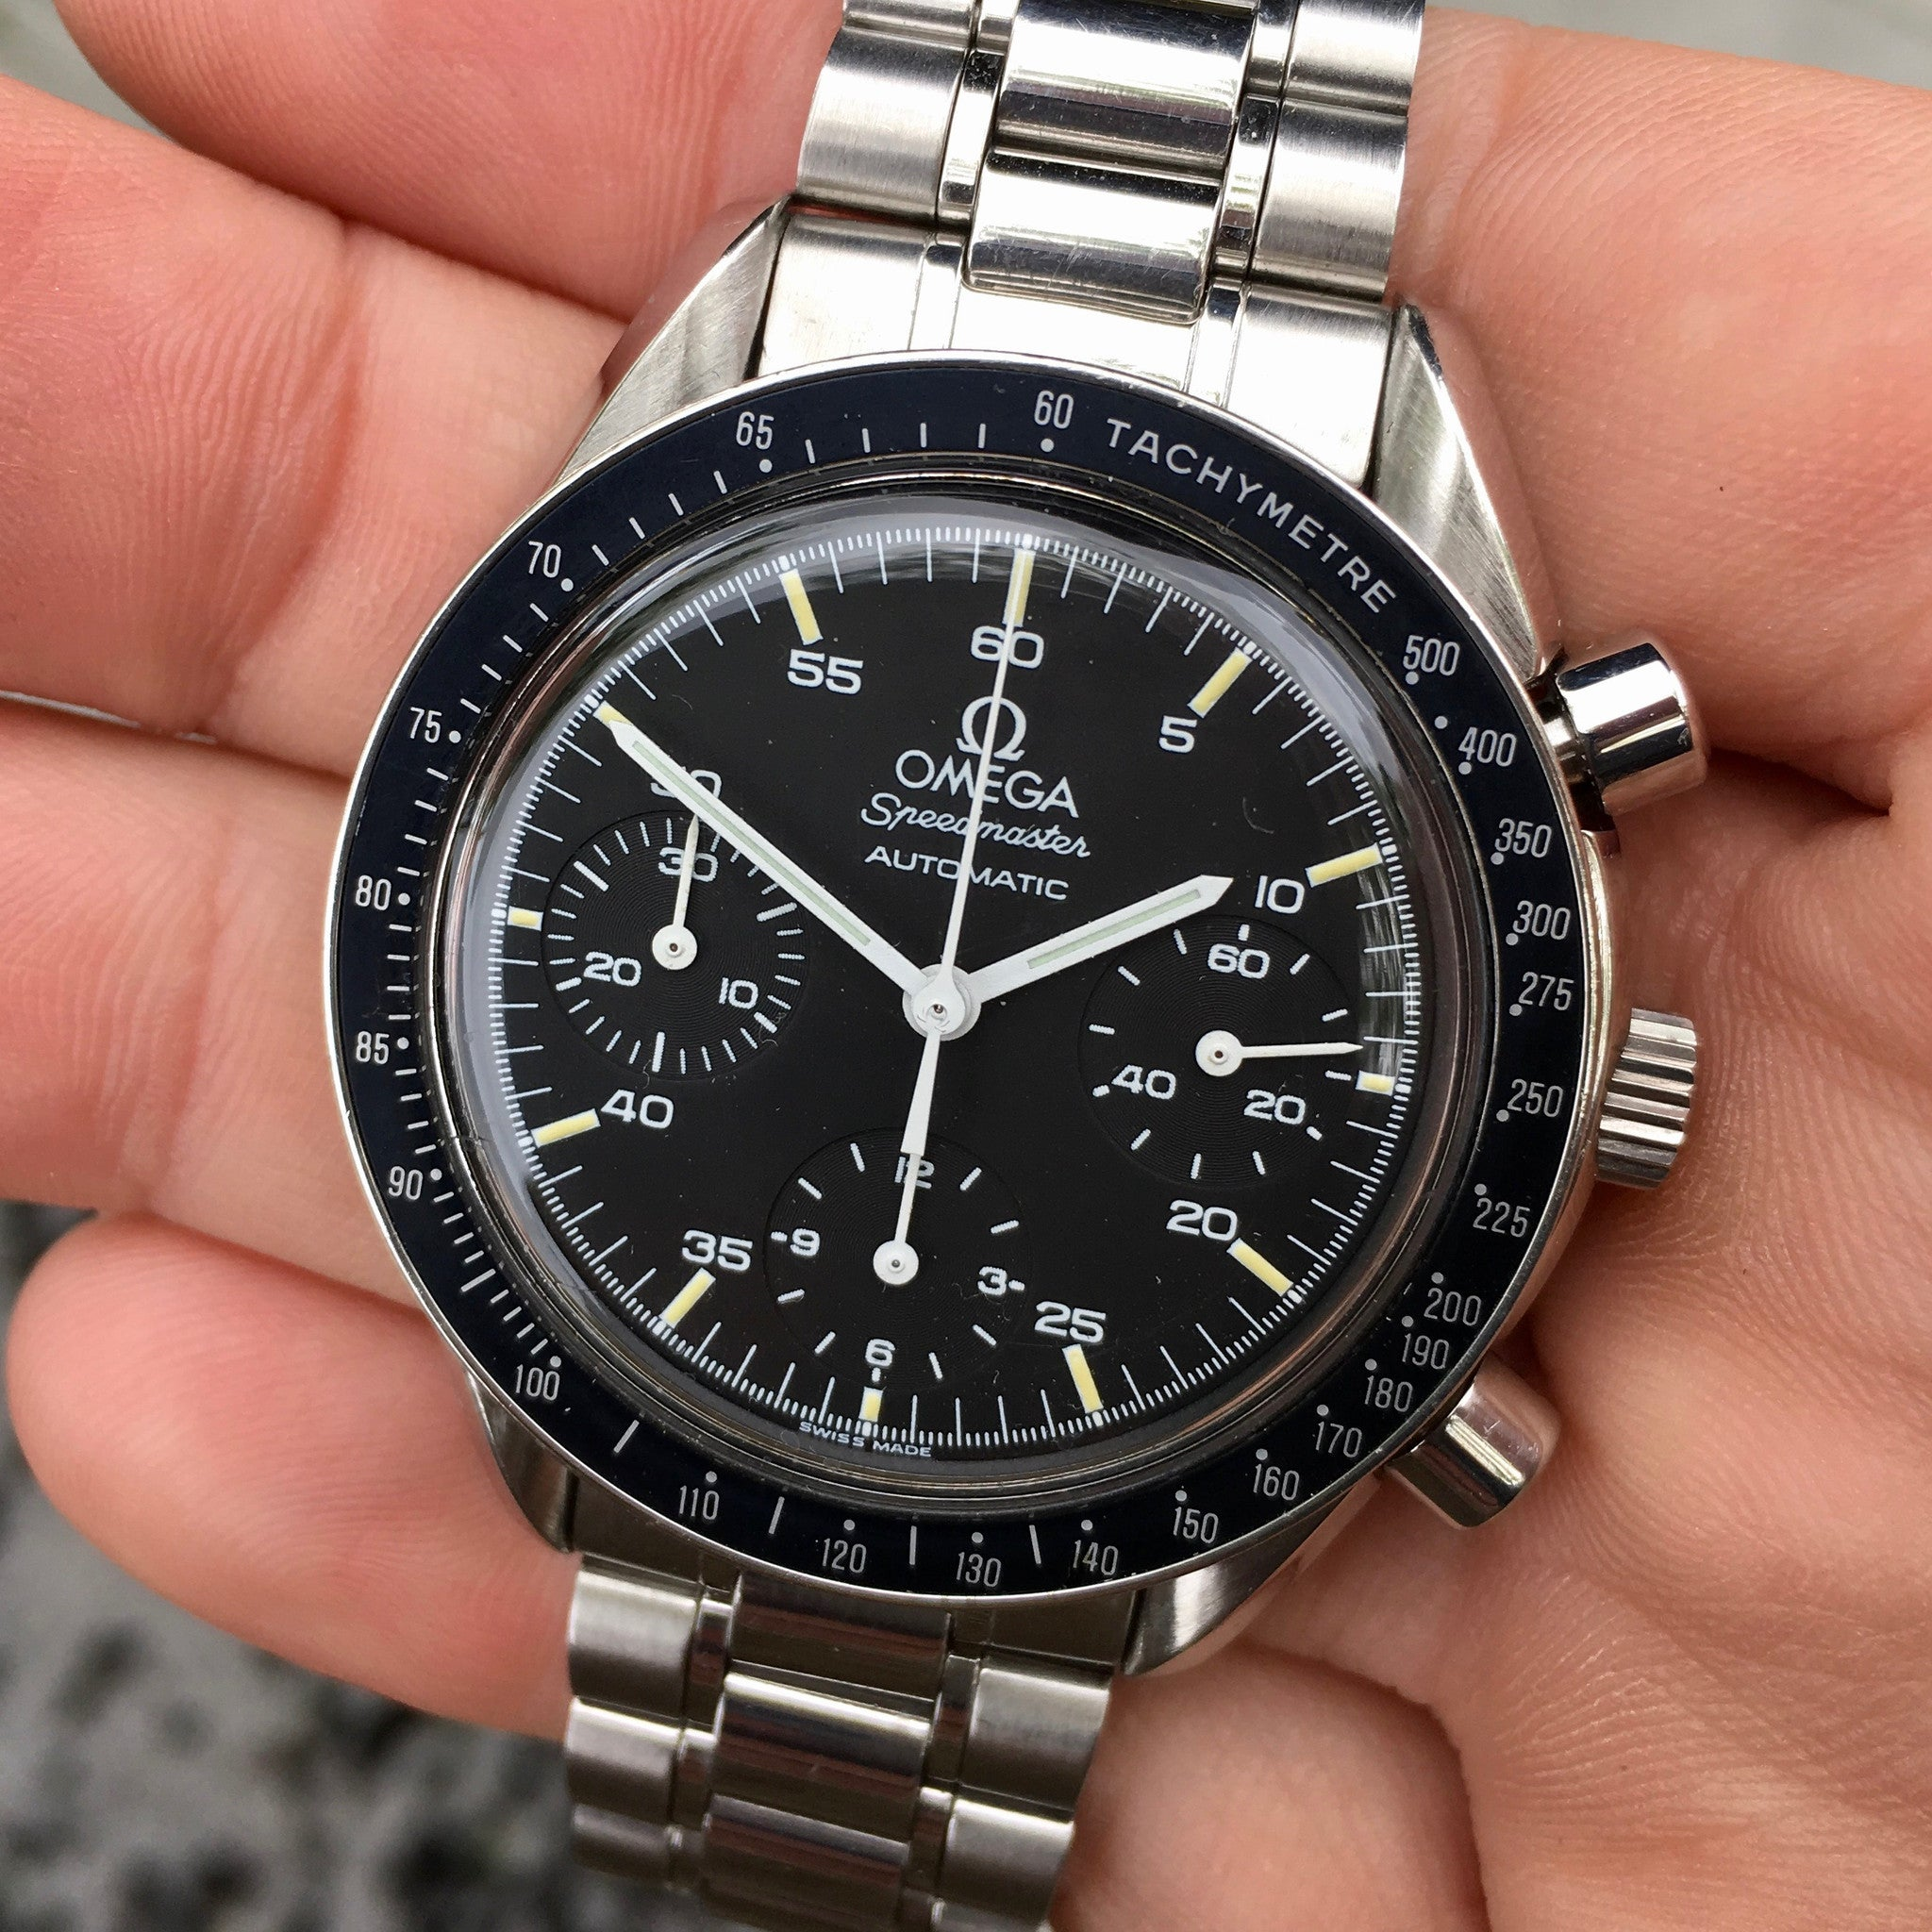 Omega Speedmaster 175.0032 Automatic Chronograph Cal. 2890 Black Dial Wristwatch